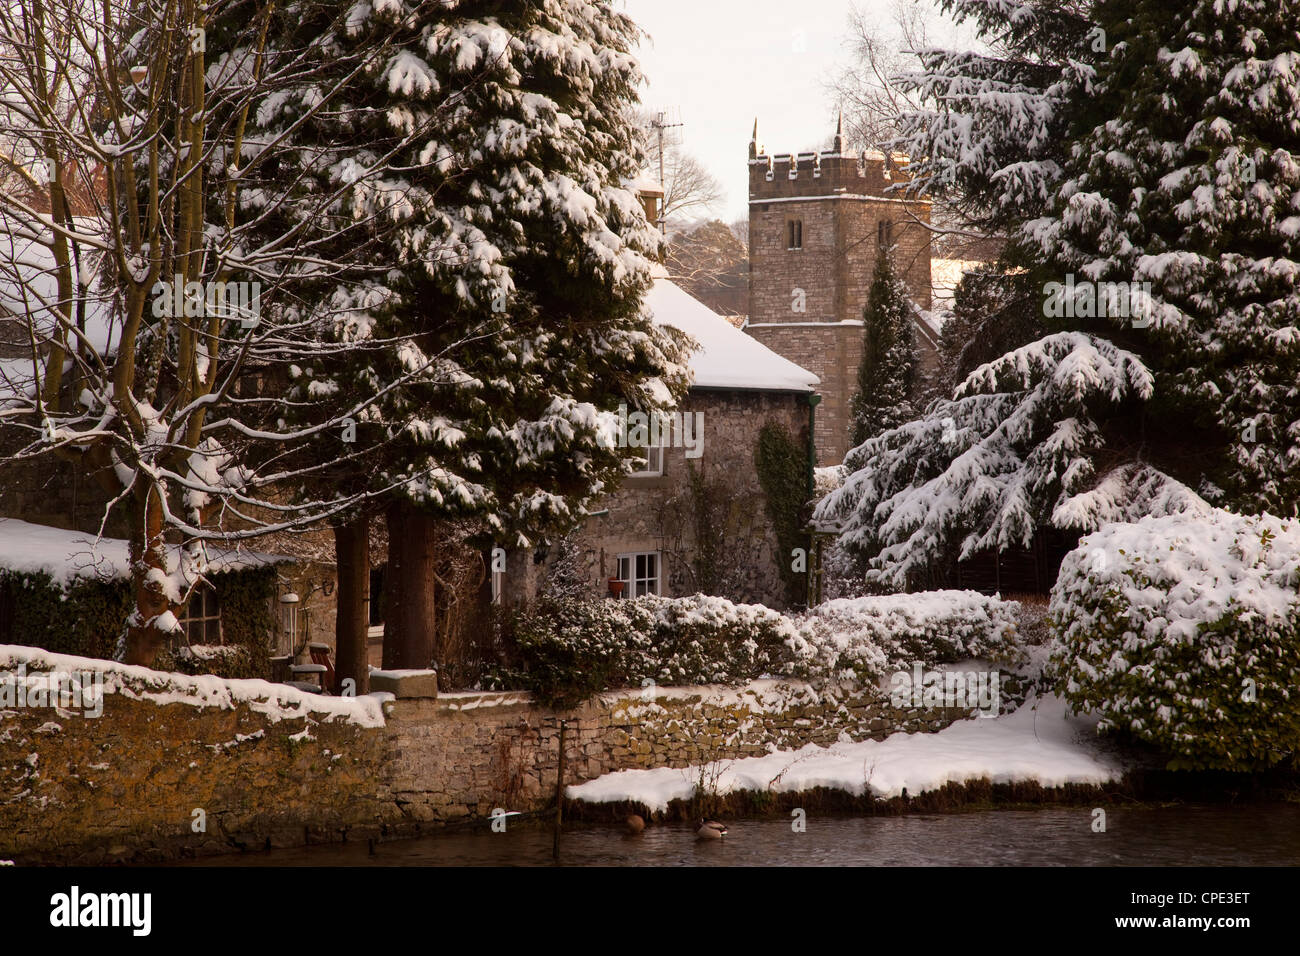 Cottage and church, Ashford in the Water, Derbyshire, England, United Kingdom, Europe - Stock Image